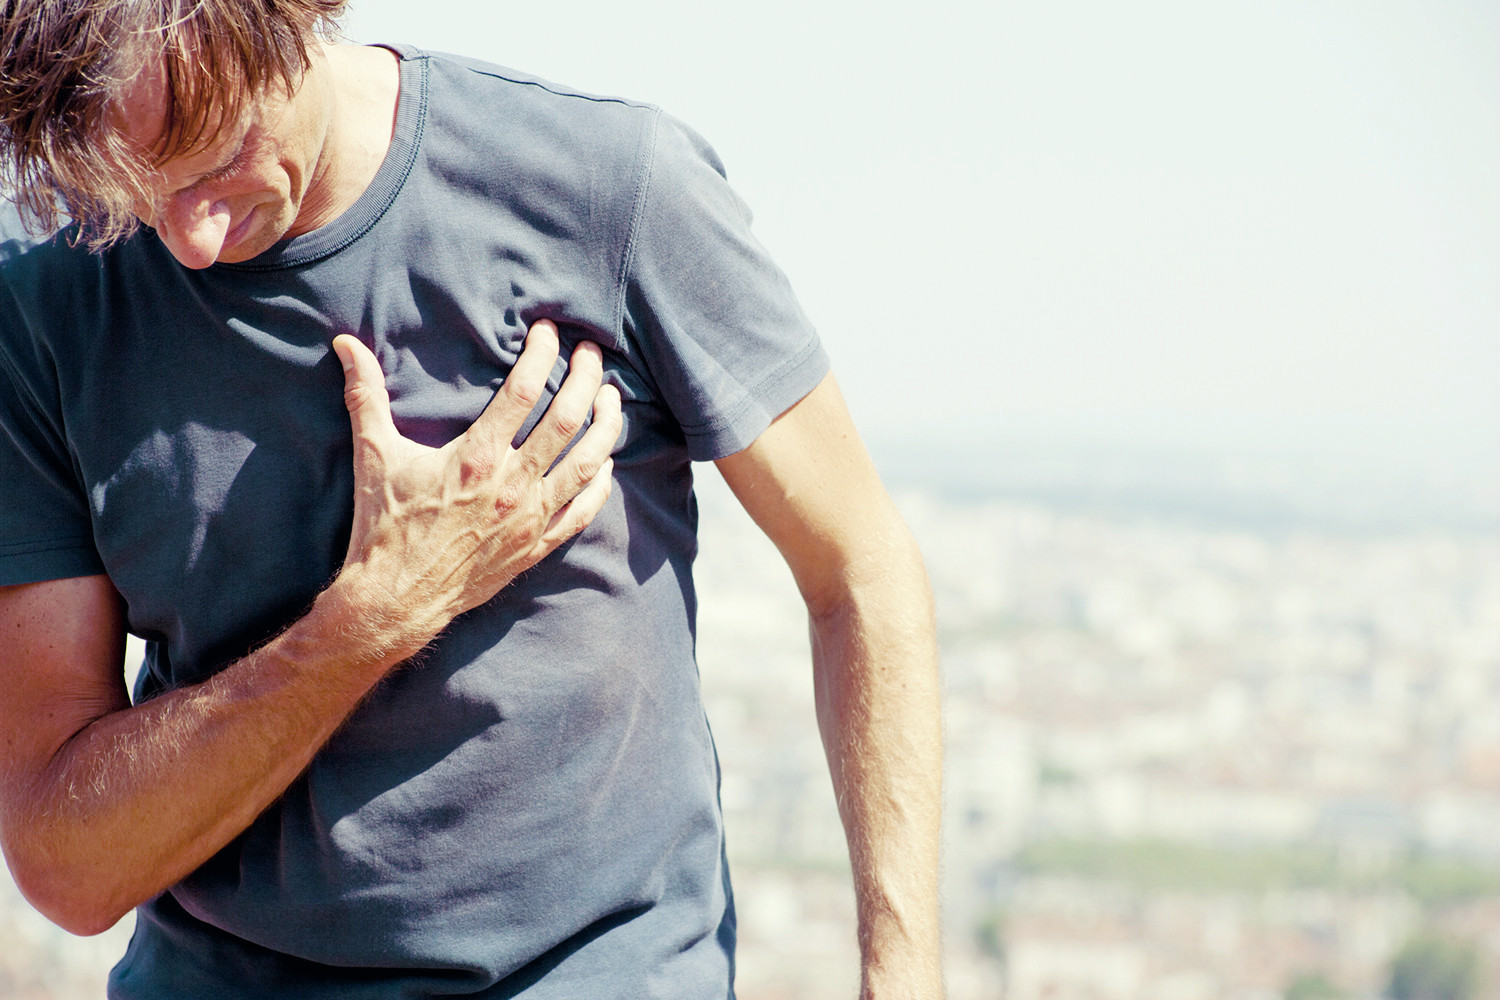 Chest Soreness and Other Symptoms